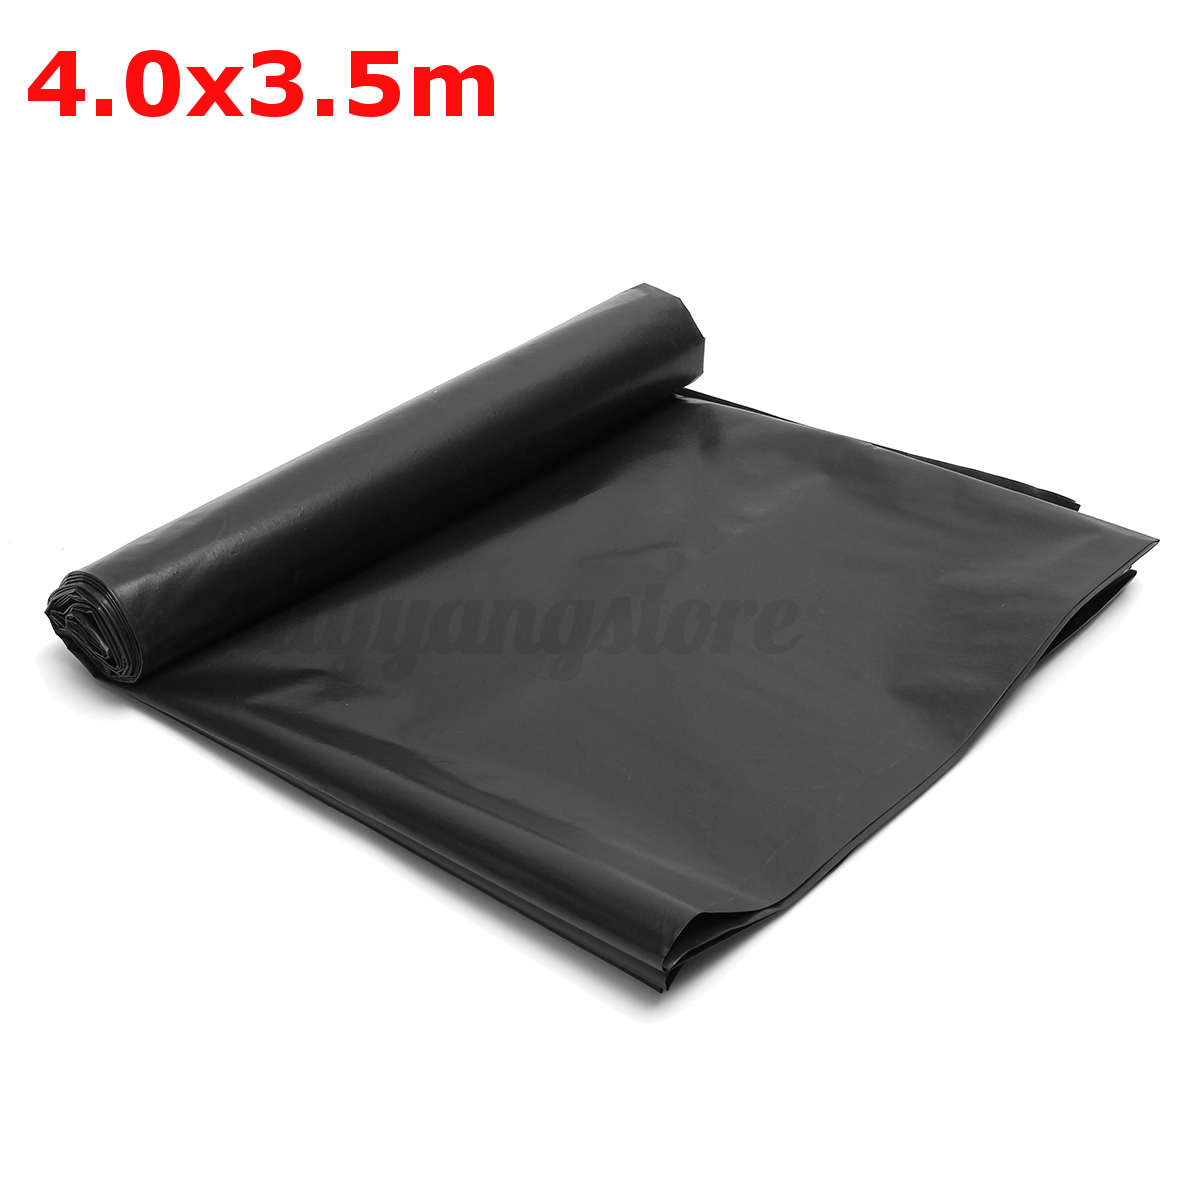 Durable fish pond liners reinforced hdpe membrane garden for B liner fish